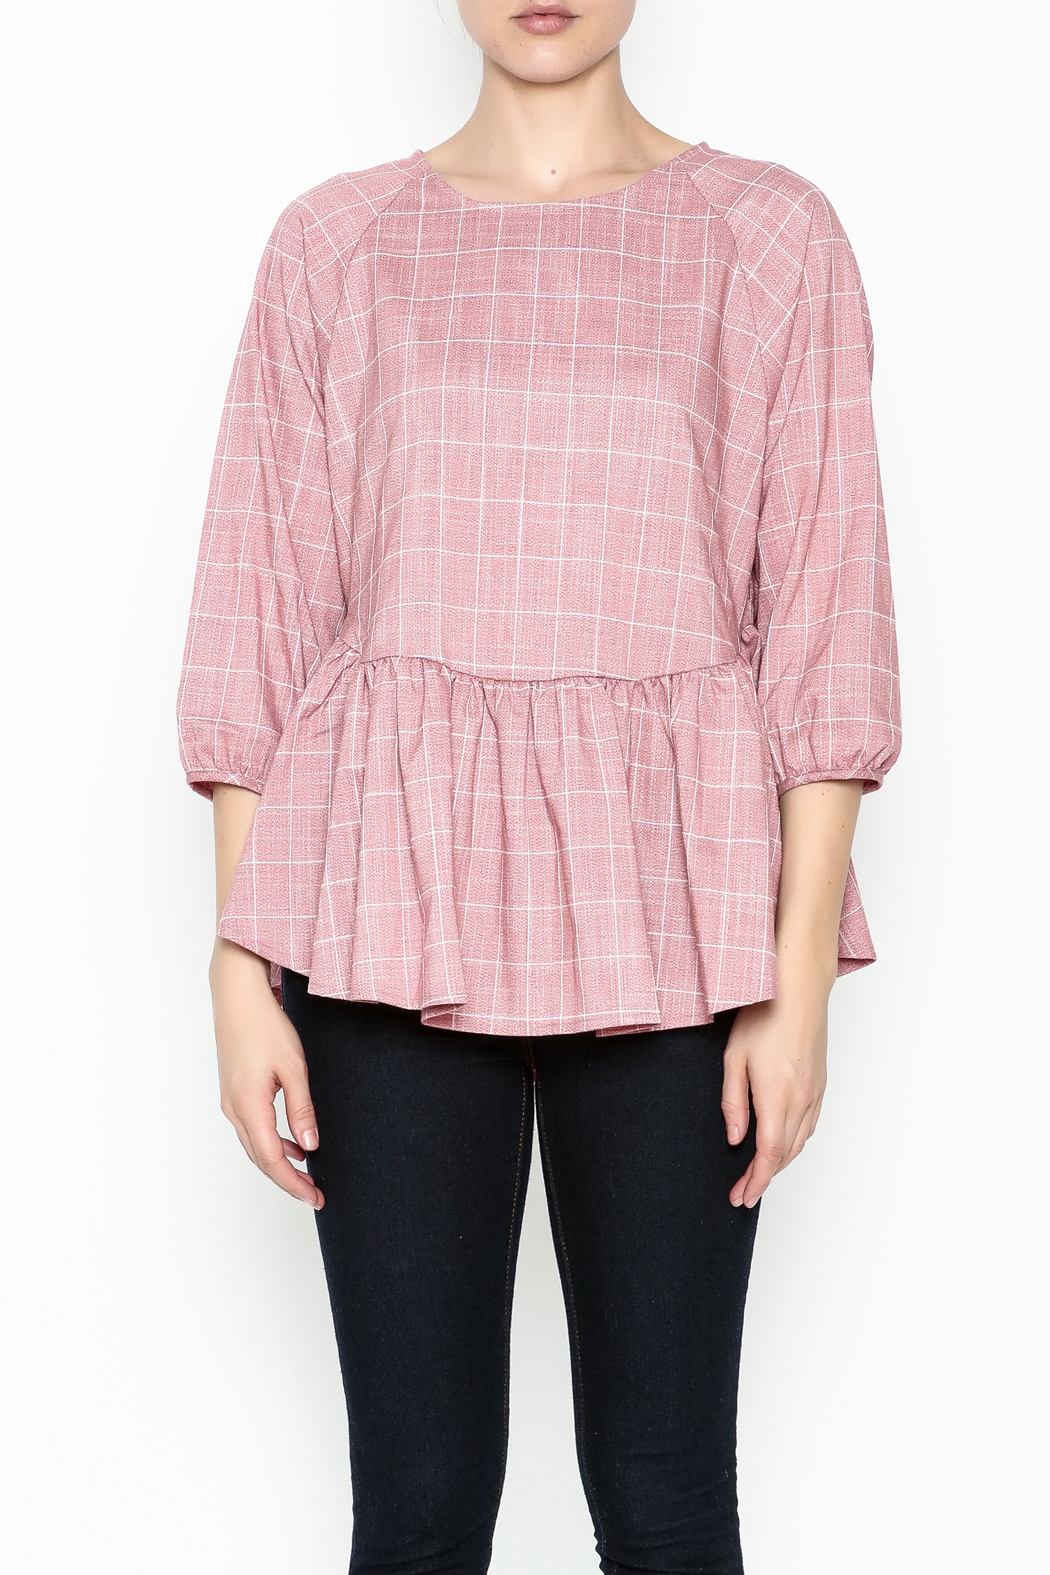 FRNCH Check Peplum Blouse - Front Full Image